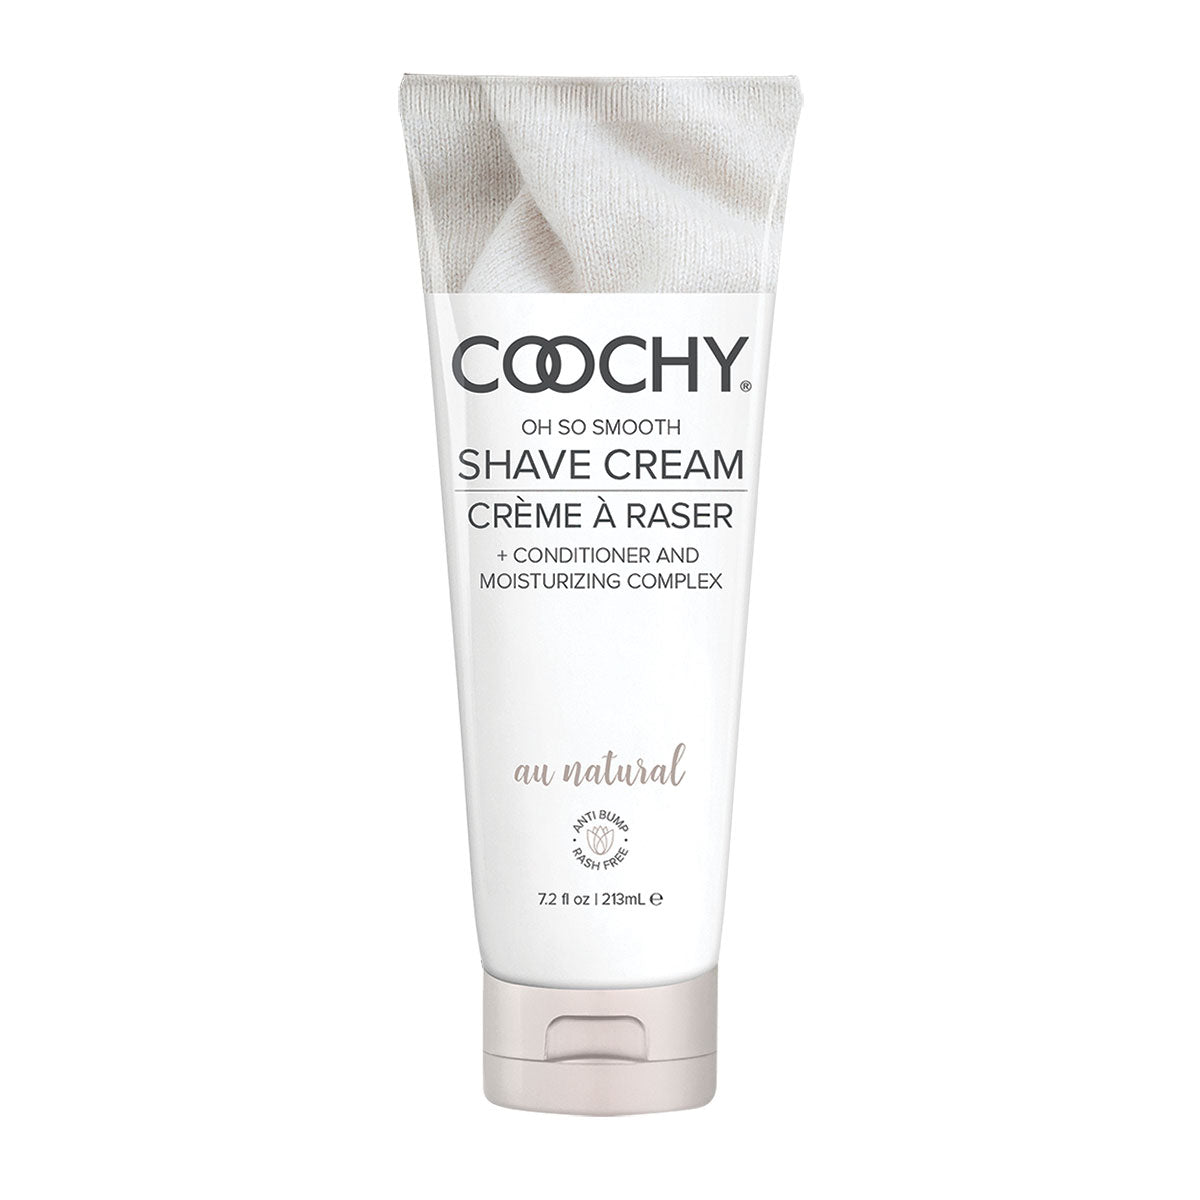 Coochy Oh So Smooth Shave Cream - Au Natural (Fragrance Free) 12.5